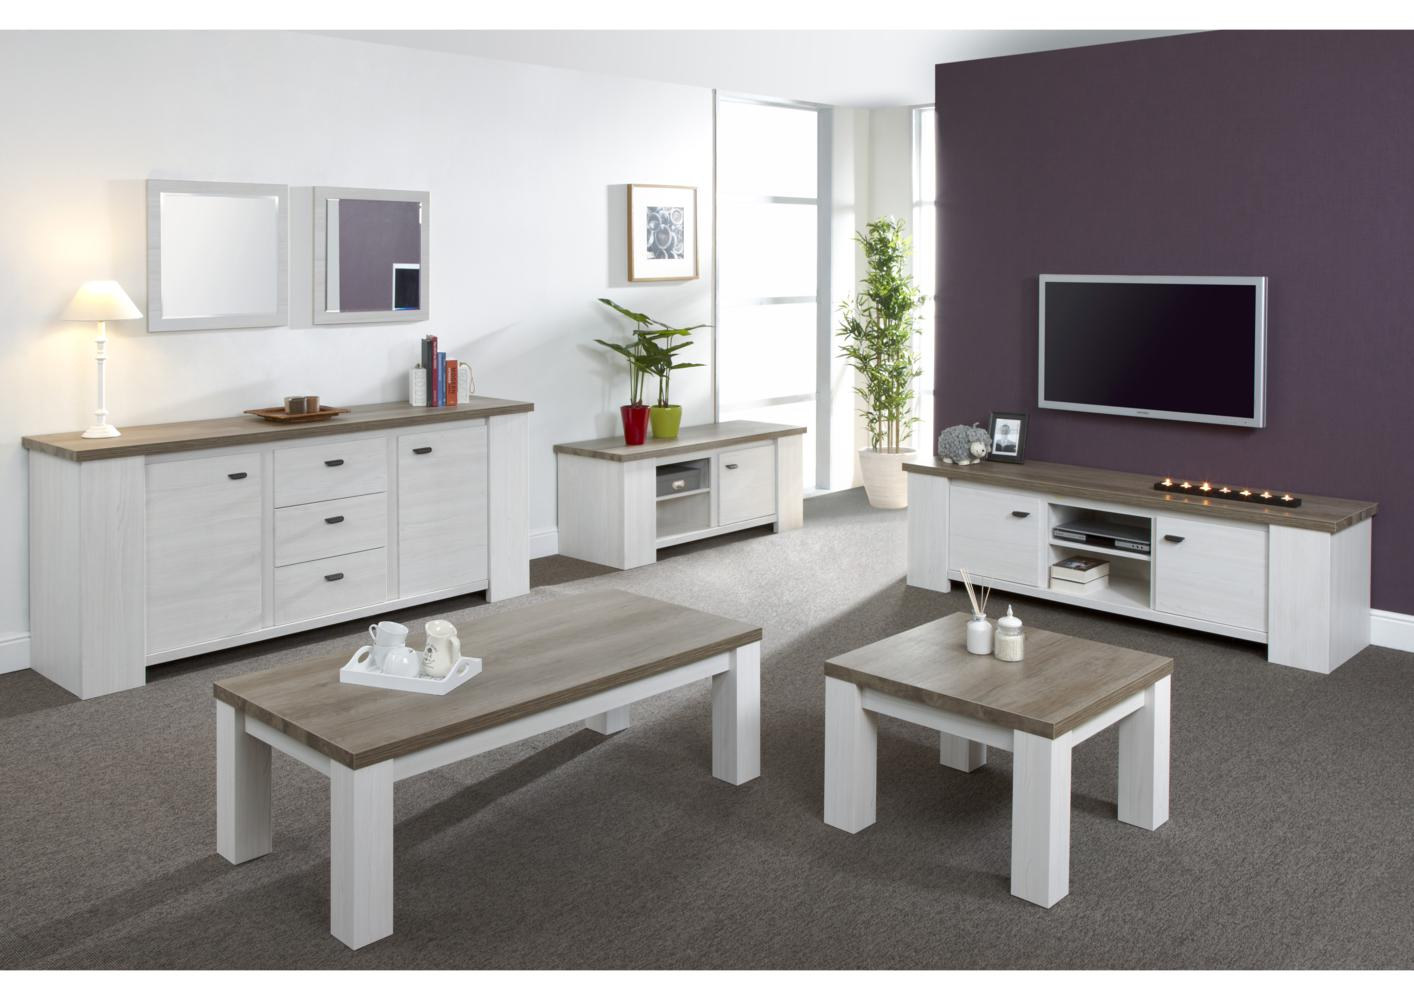 acheter votre meuble tv moderne bicolor chez simeuble. Black Bedroom Furniture Sets. Home Design Ideas